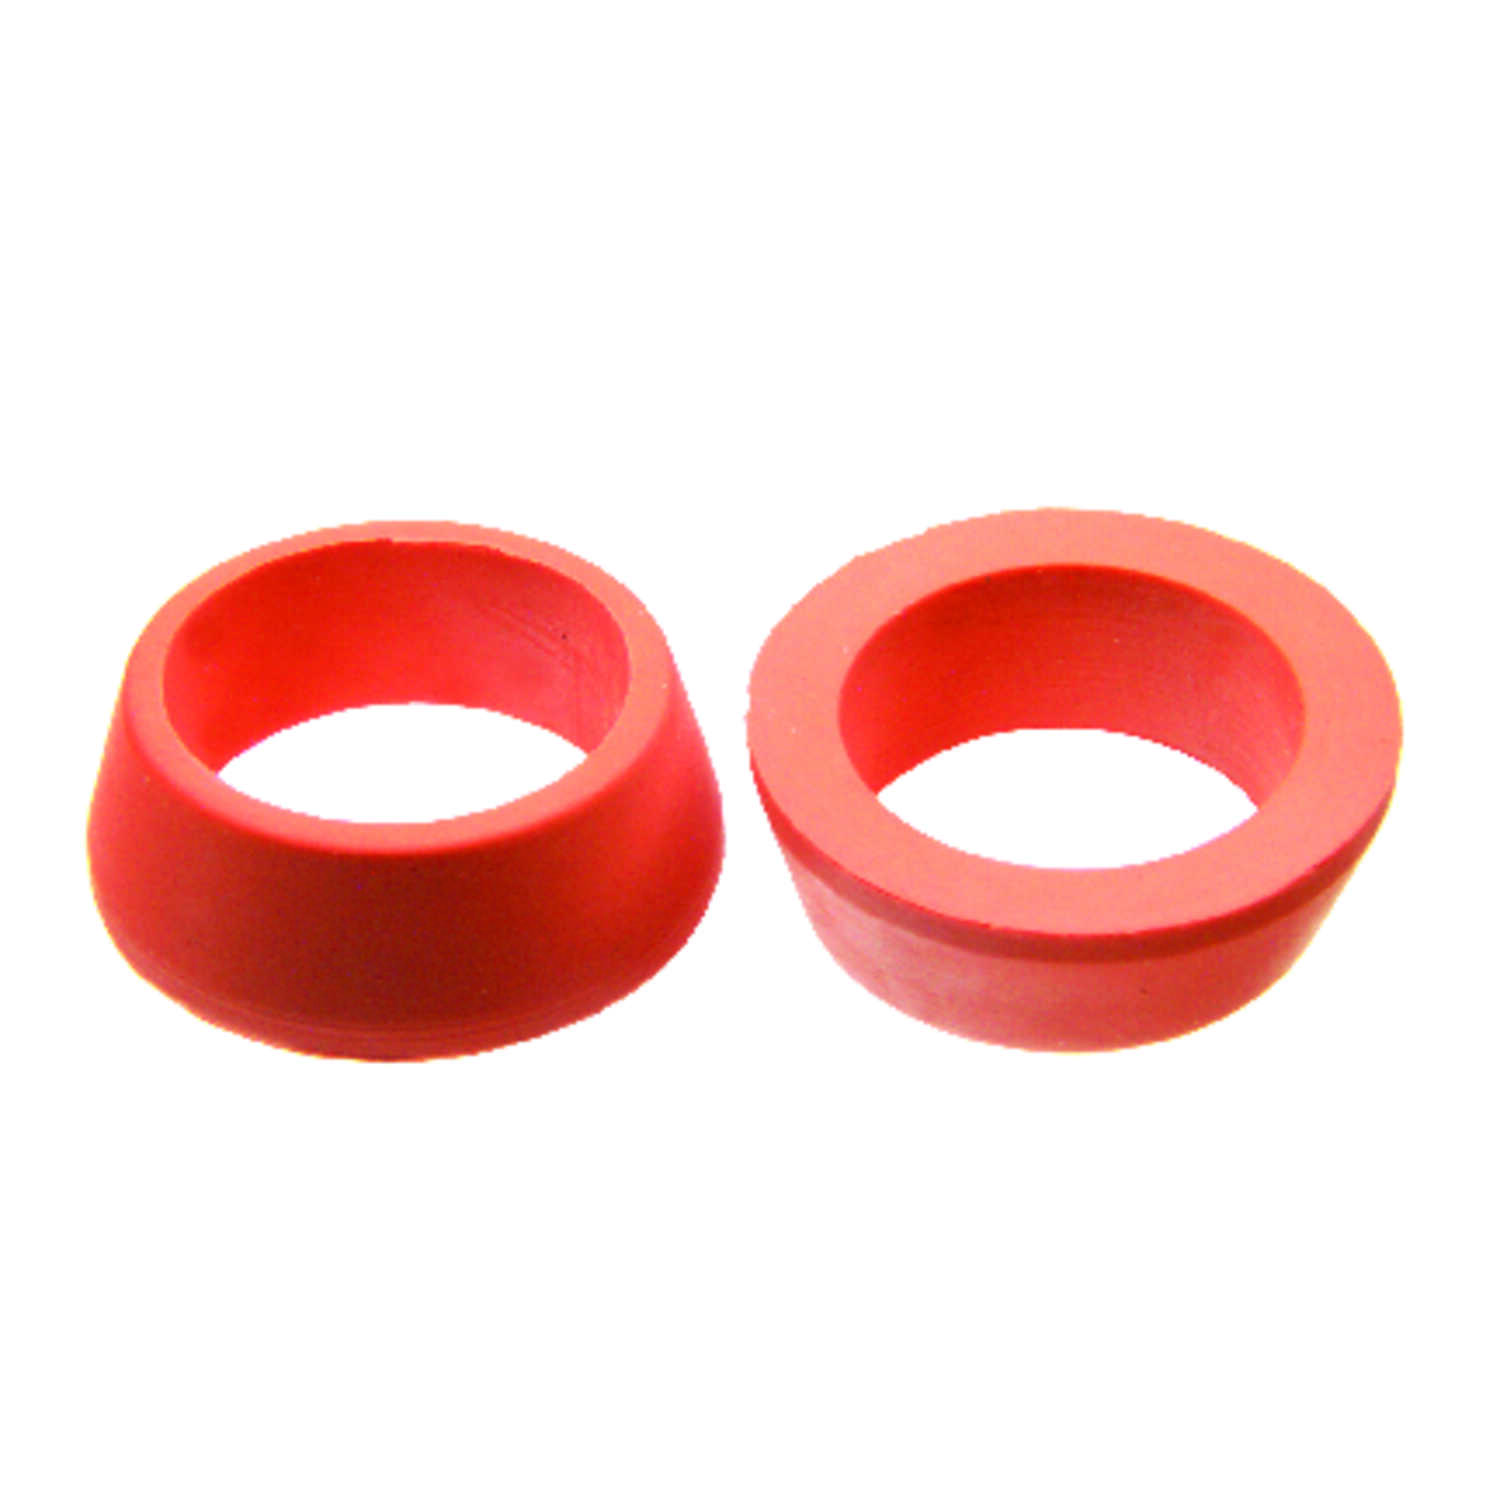 Danco  19/32 in. Dia. Rubber  Washer  1 pk